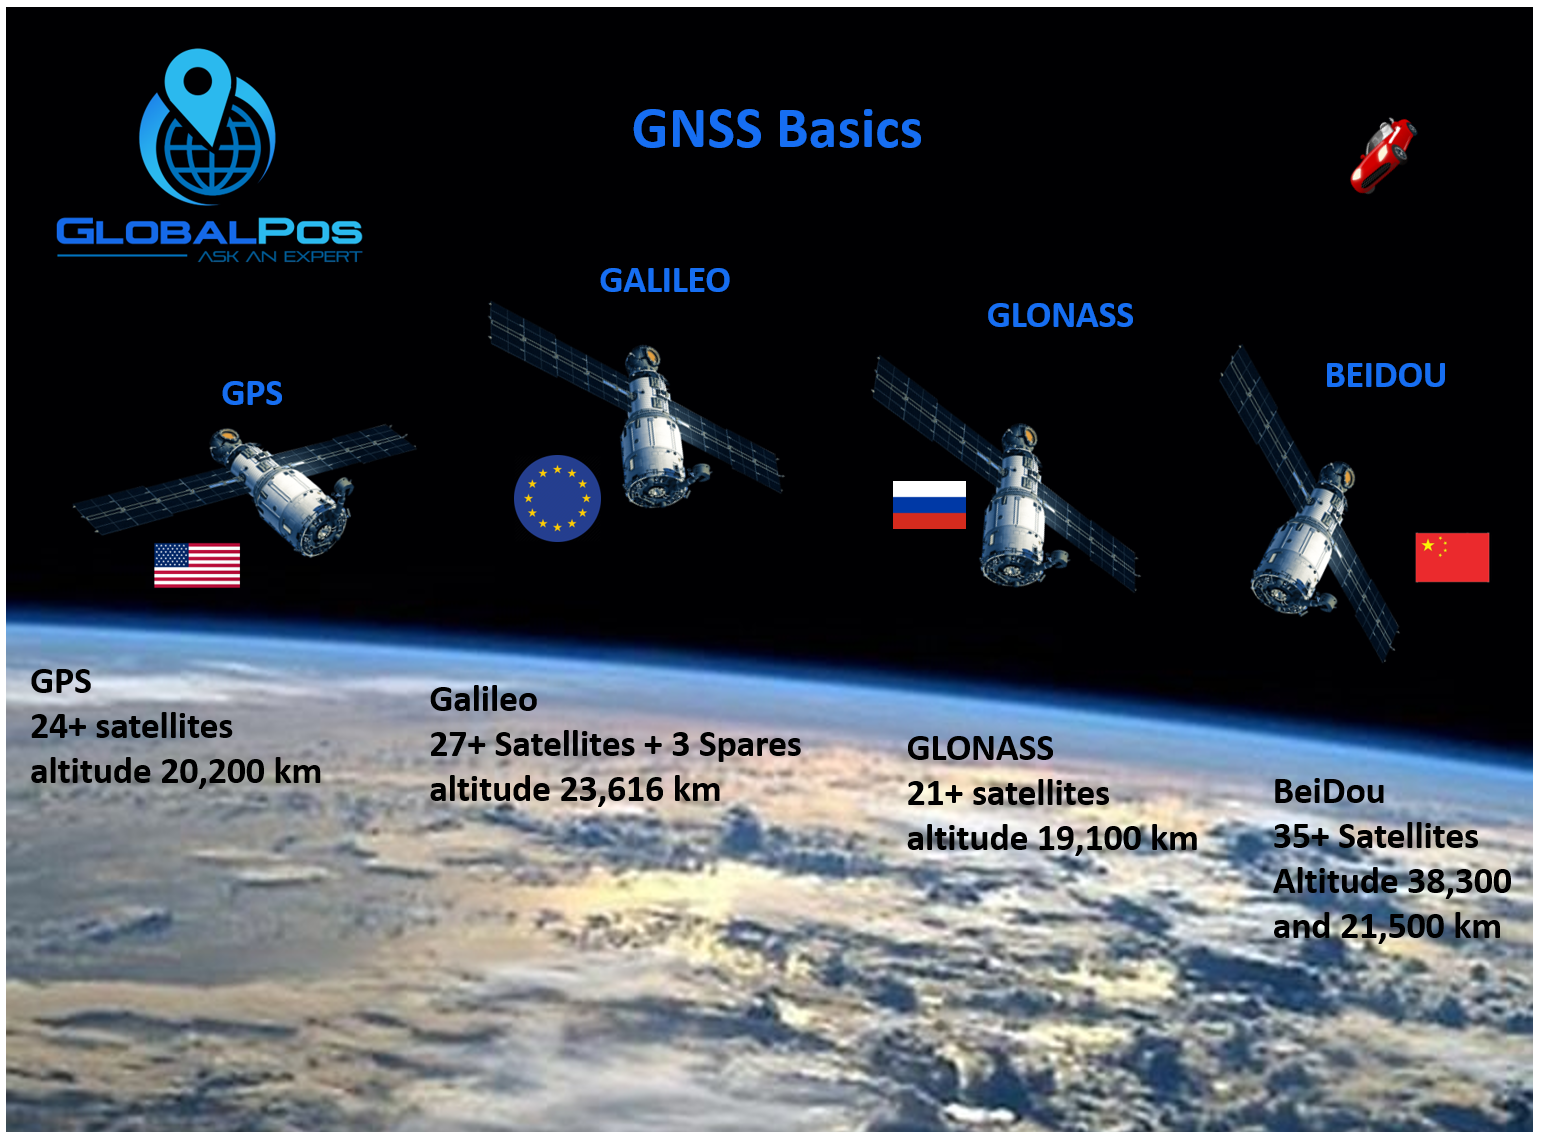 GNSS Basics Explained.png